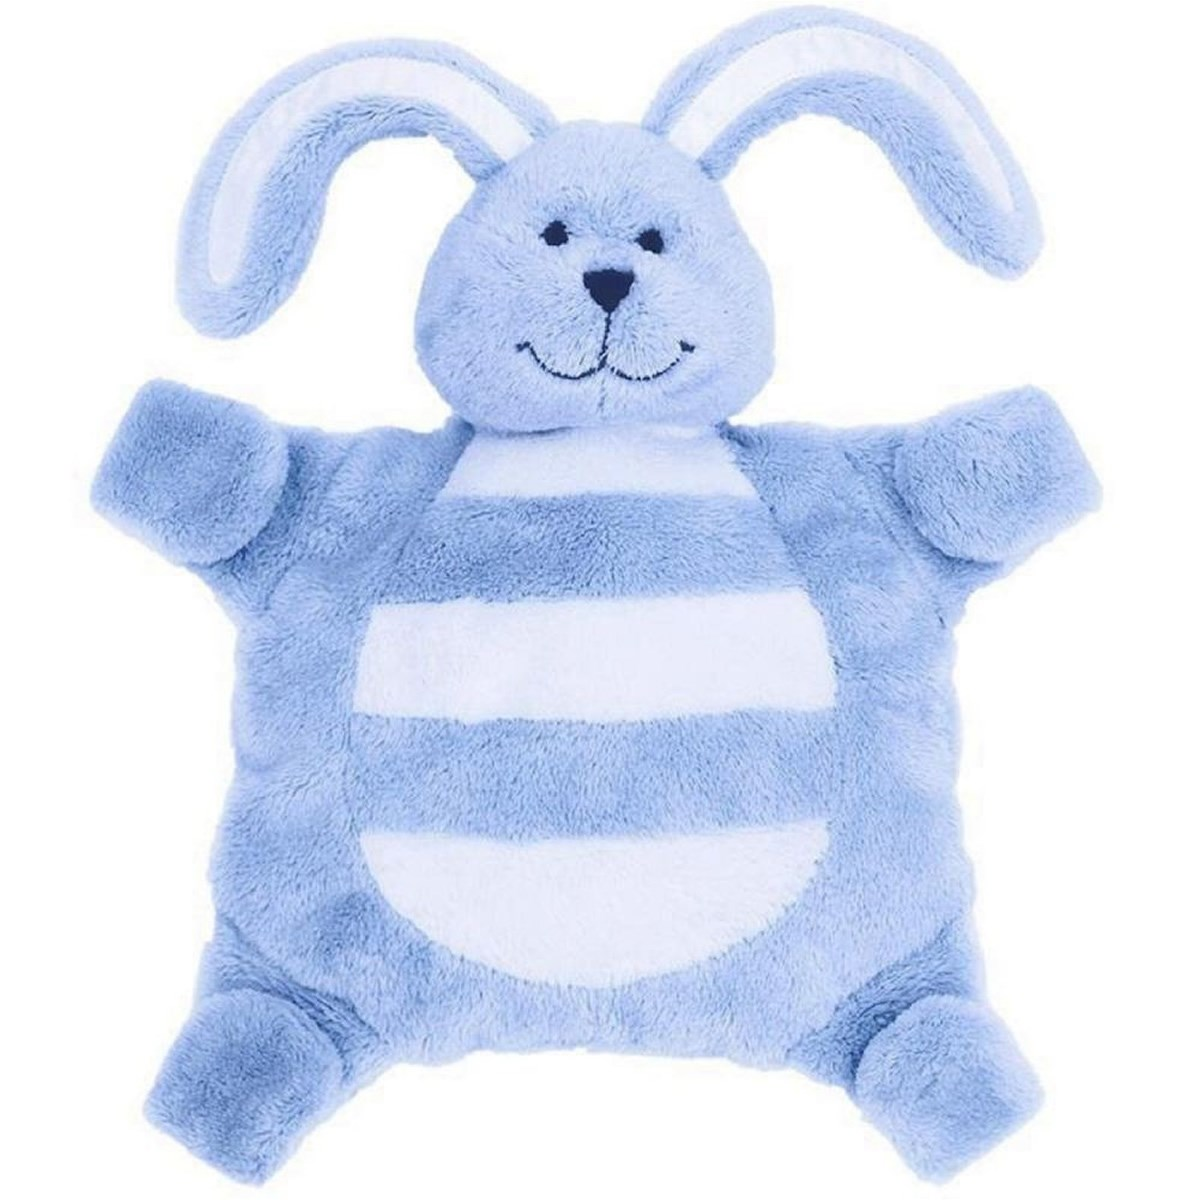 Sleepytot Large Blue Bunny